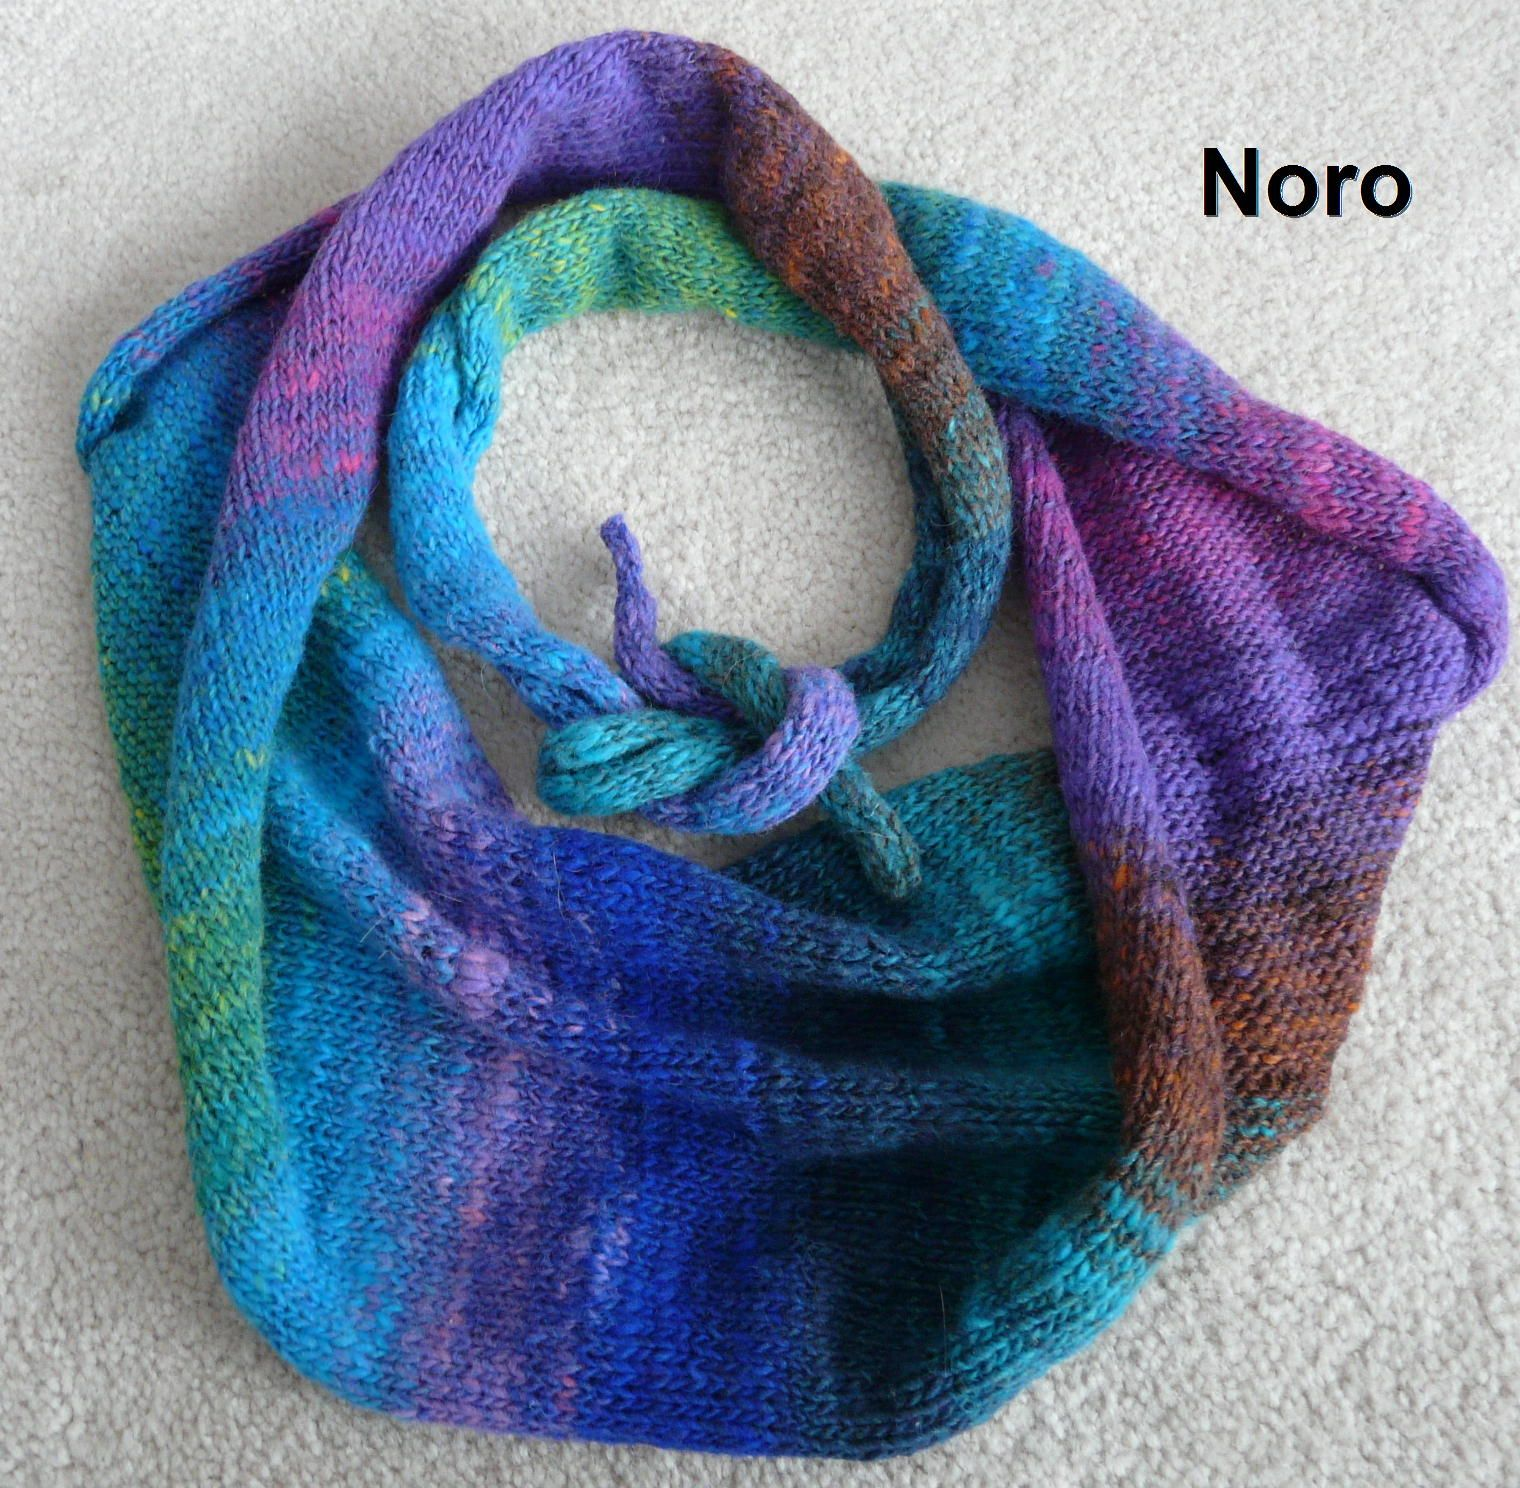 Free knitting patterns noro silk garden scarf pattern knitted abc knitting patterns elegant noro yarn sweater for men bankloansurffo Gallery